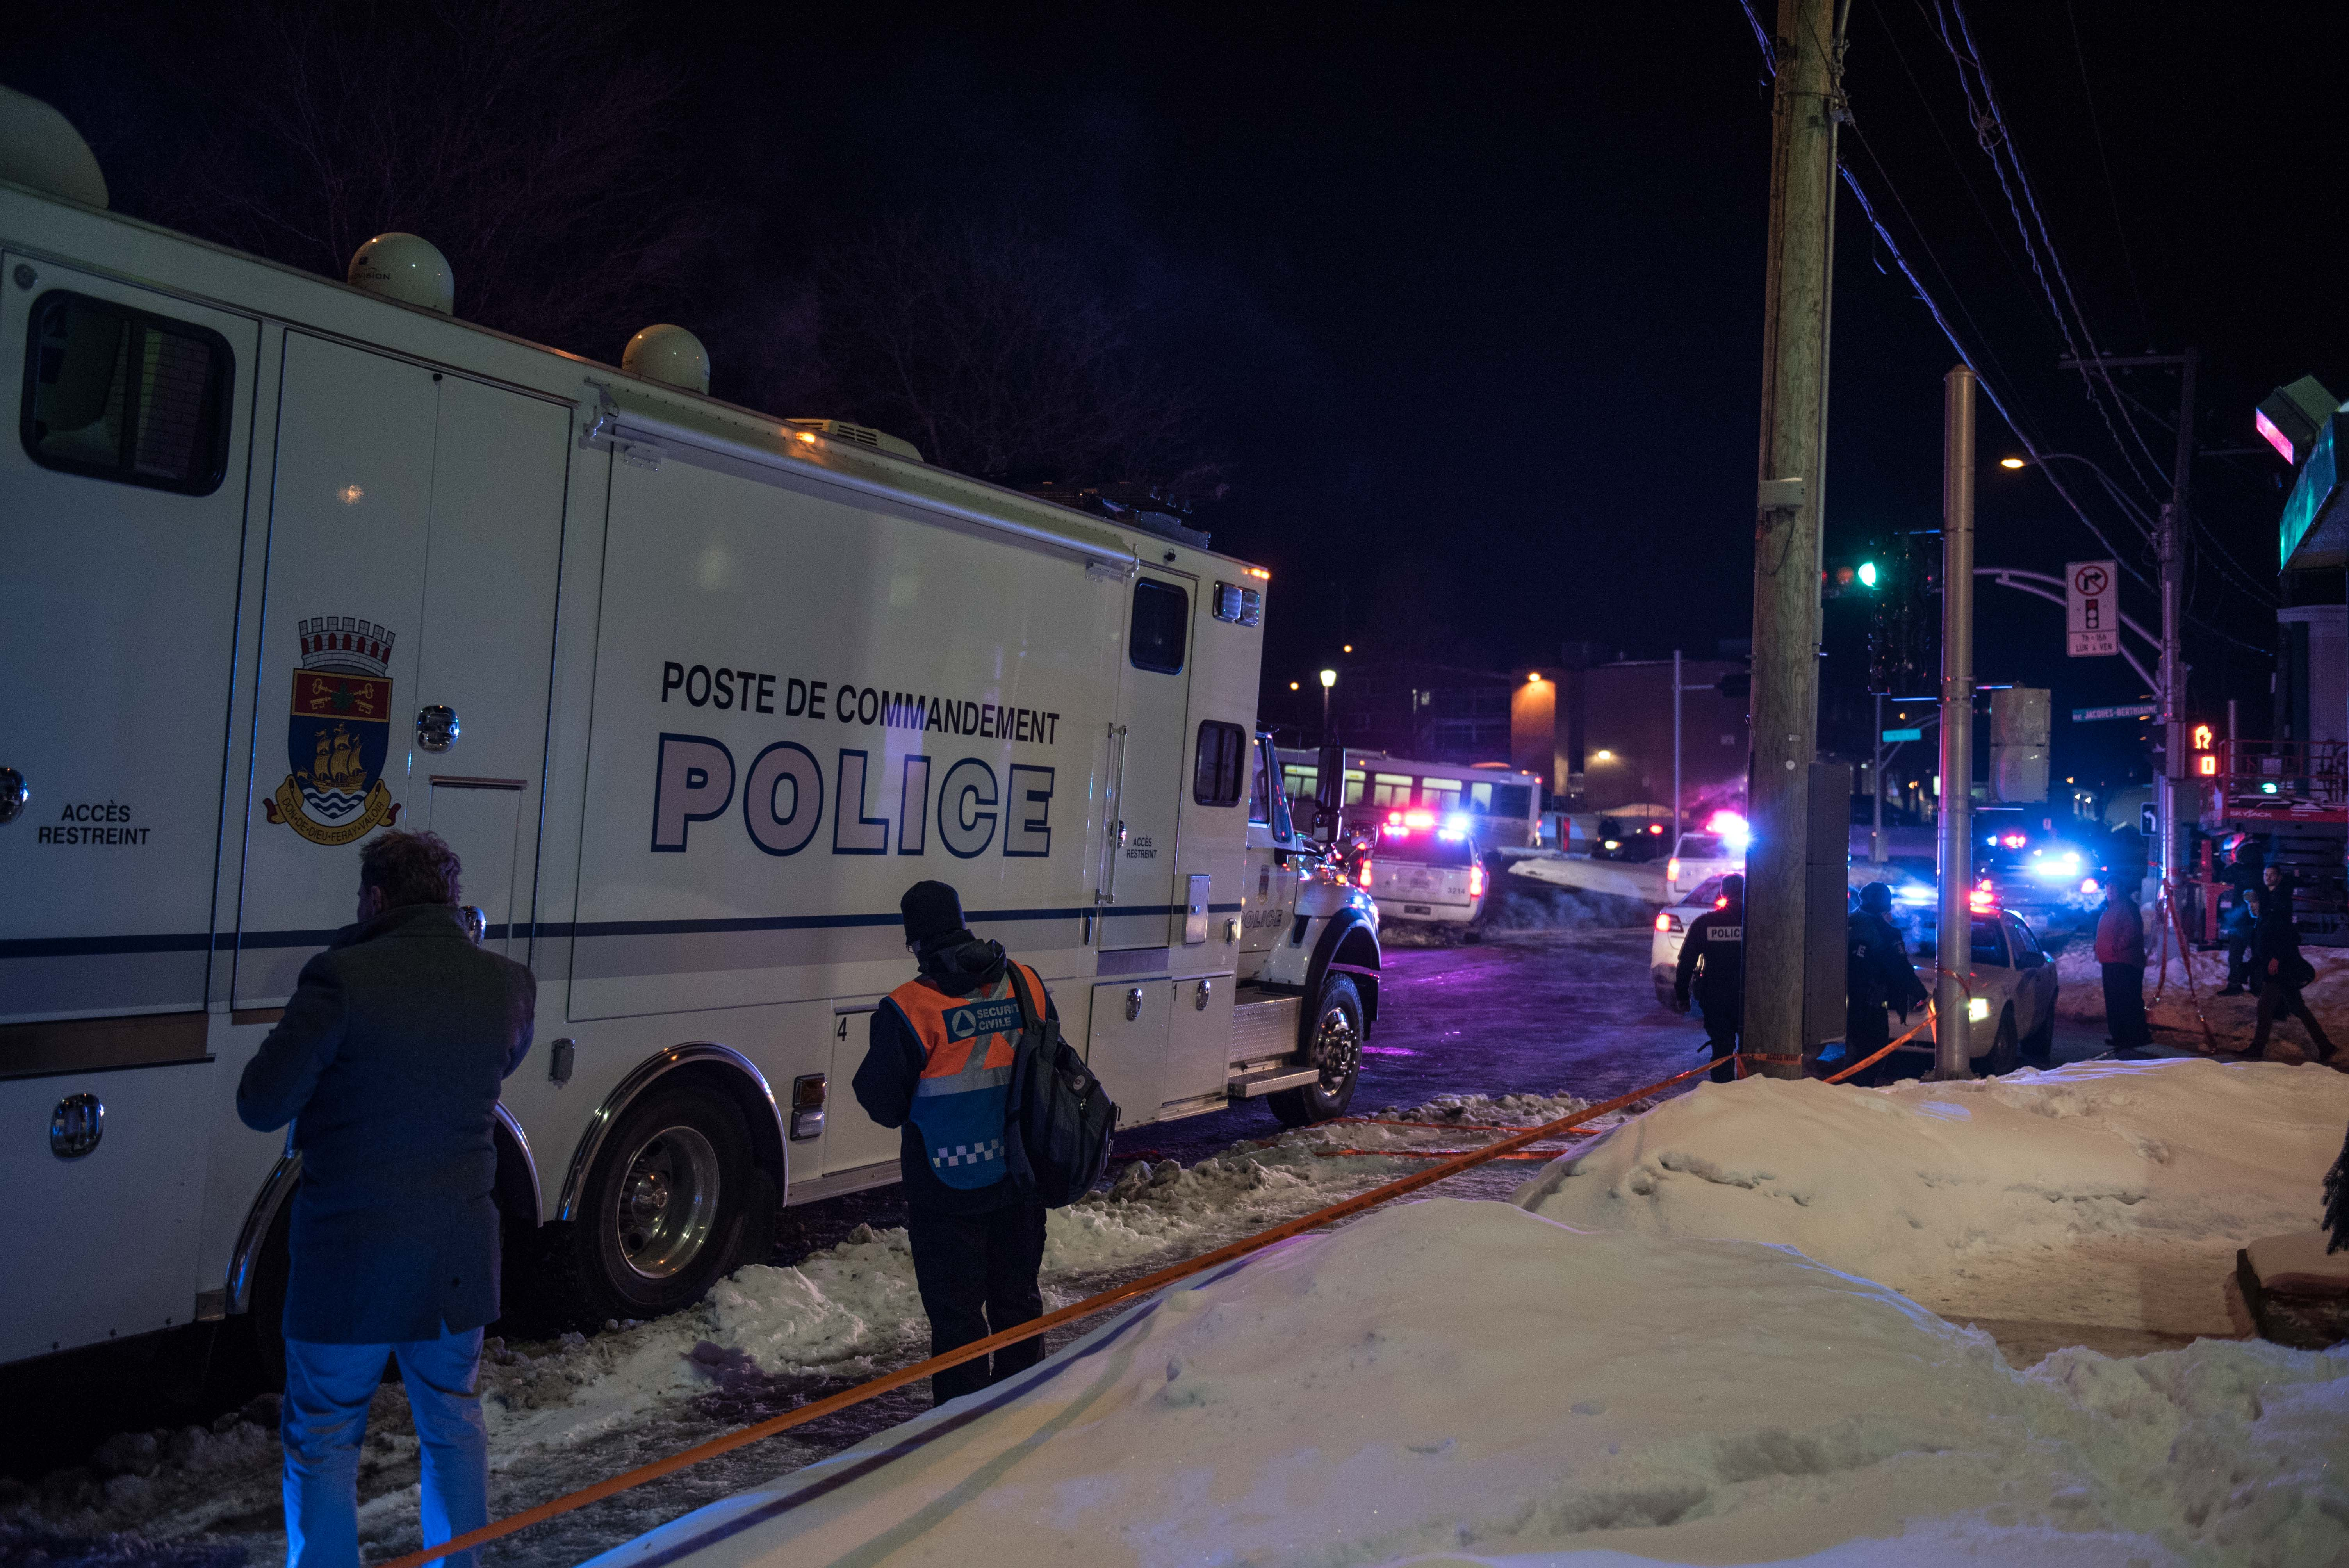 Canadian police officers respond to a shooting in a mosque at the Québec City Islamic cultural center on Sainte-Foy Street in Quebec city (credit: ALICE CHICHE/AFP/Getty Images)